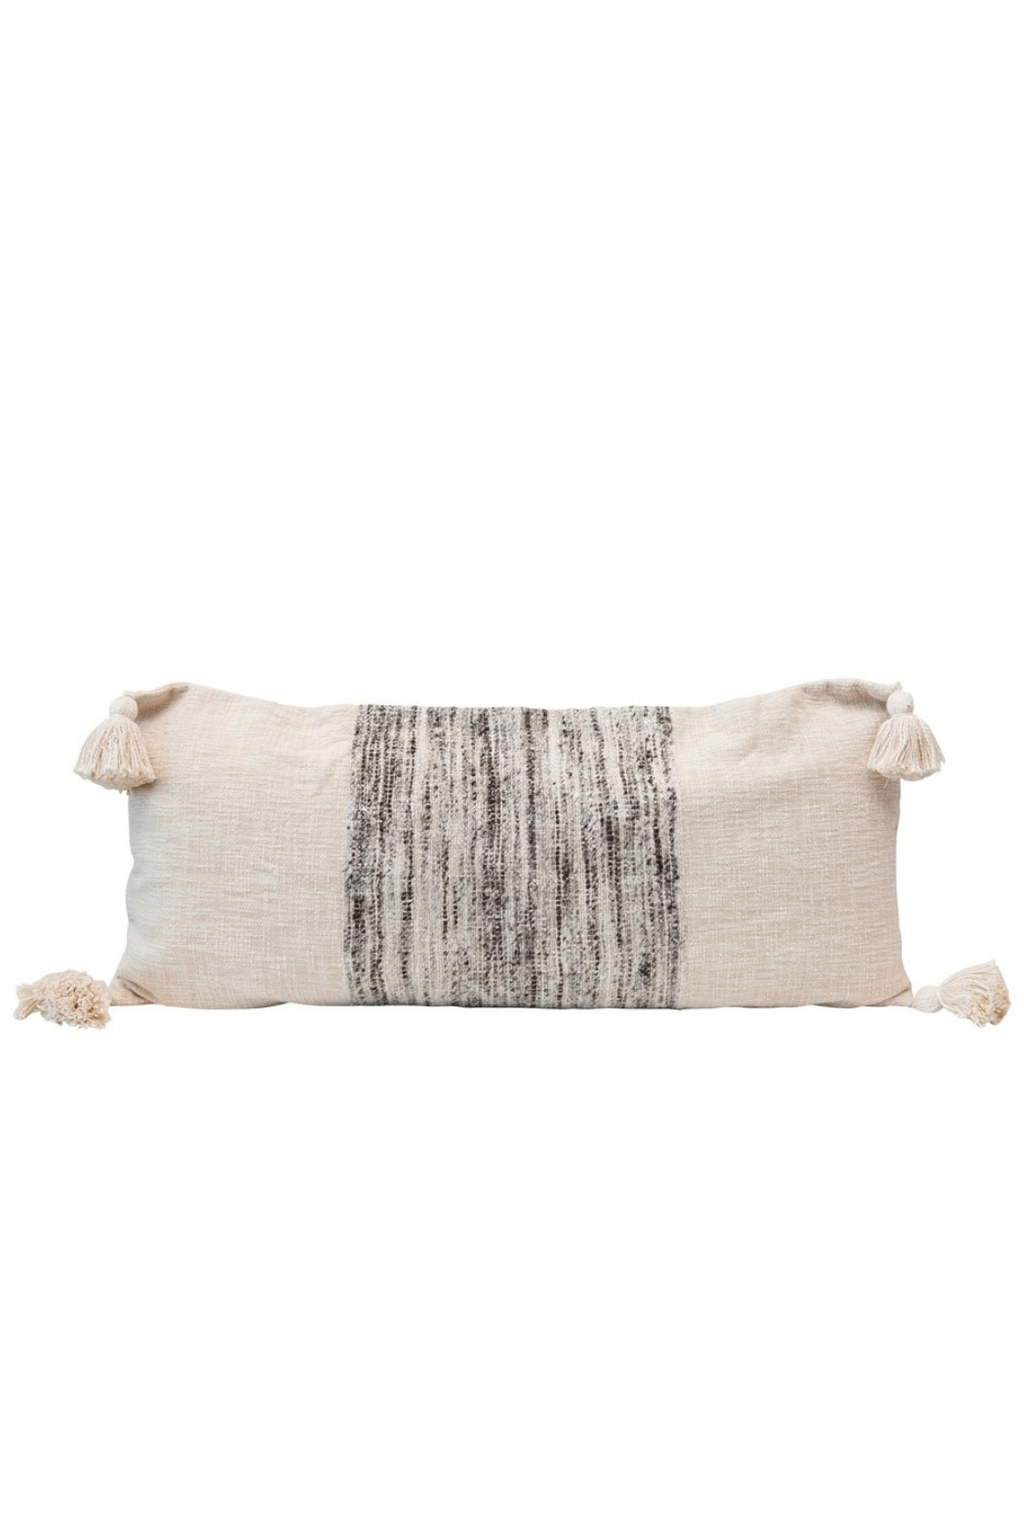 Creative Co-op Sonoma Woven Lumbar Pillow with Tassels DF4537